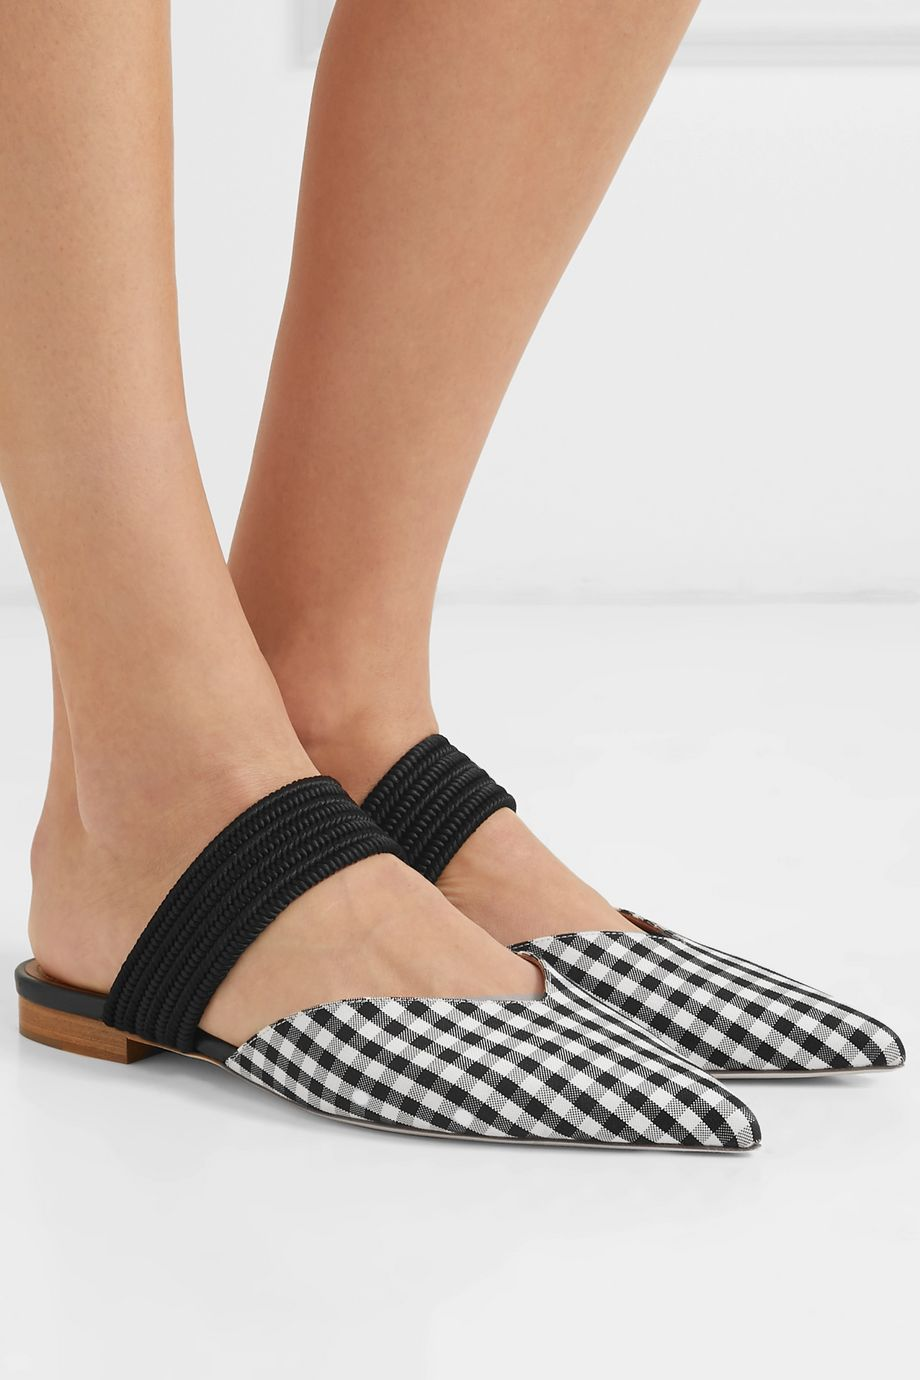 Malone Souliers Maisie Luwolt cord-trimmed gingham canvas mules